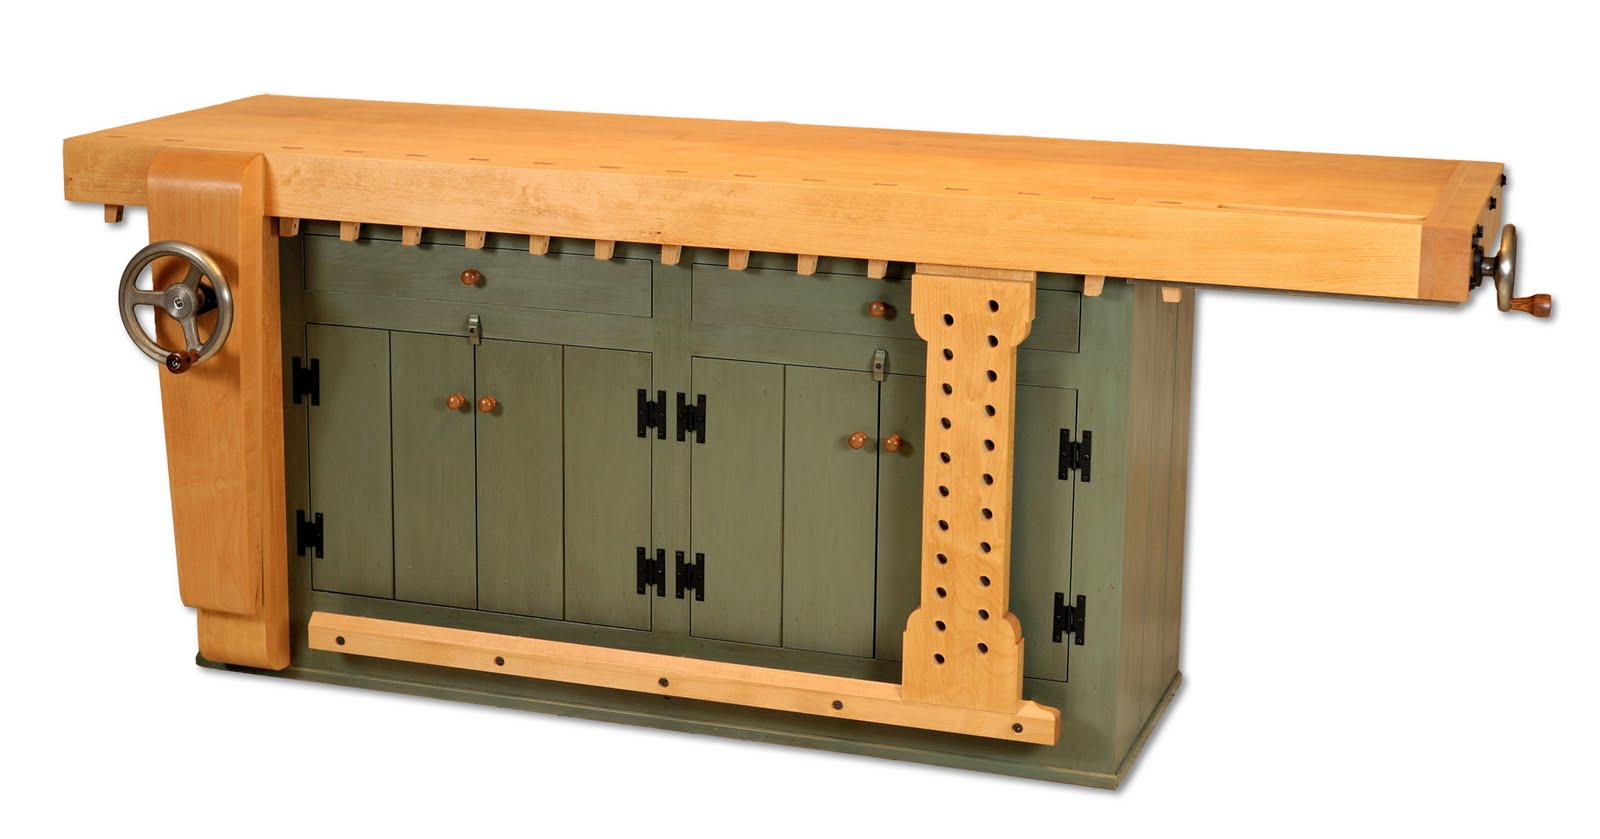 Unique Found By SmithNicole3 Shaker Style And Shaker Benches Are Inspired By The Simple  Six Drawers In 2 Tiers And A Full Door Cabinet Have Small Knobs These Shaker Bench Plans Are For The Woodworking Beginner This Bench Could Be